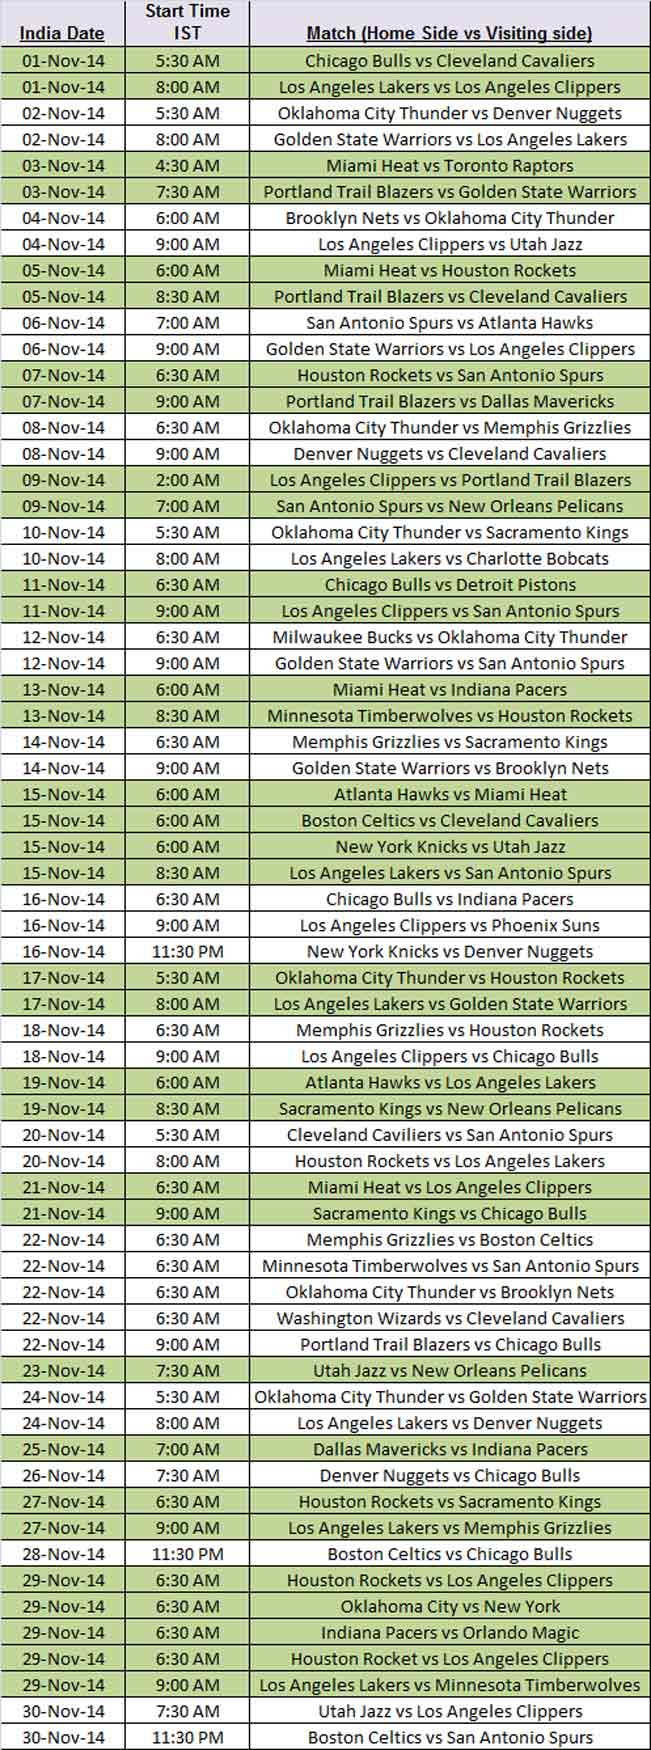 NBA 2014-15 Broadcast Schedule of November matches to be telecast in